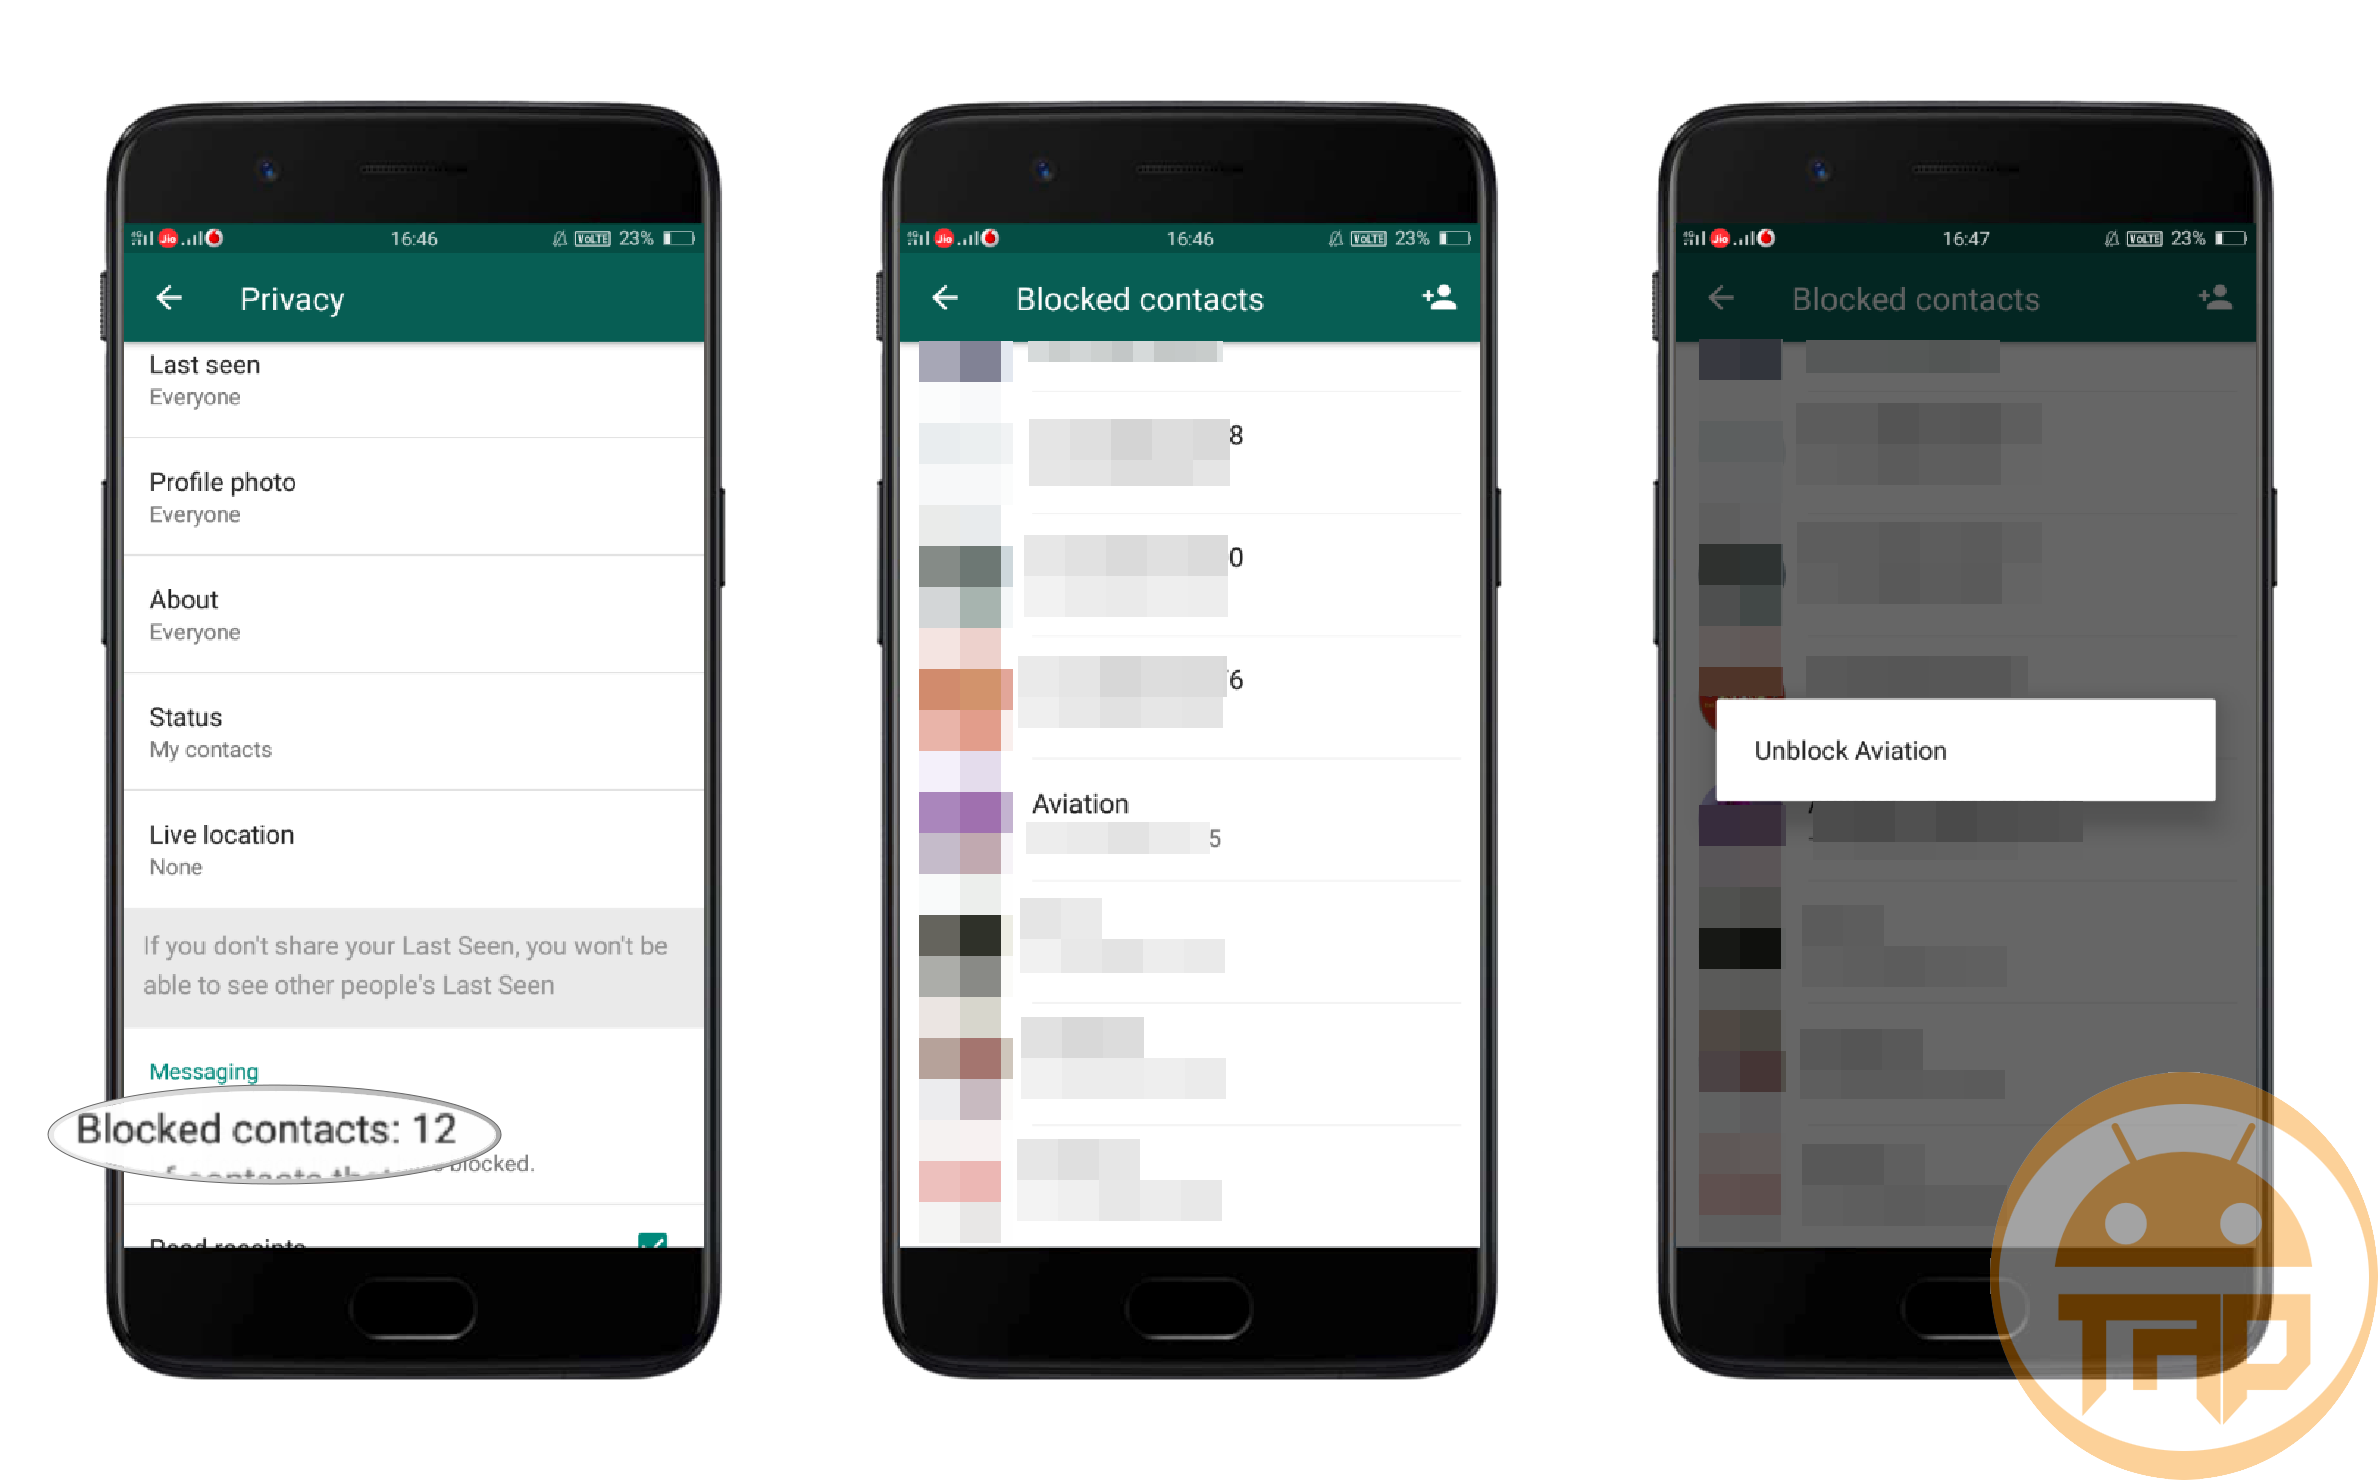 WhatsApp Android App - Everything You Need To Know